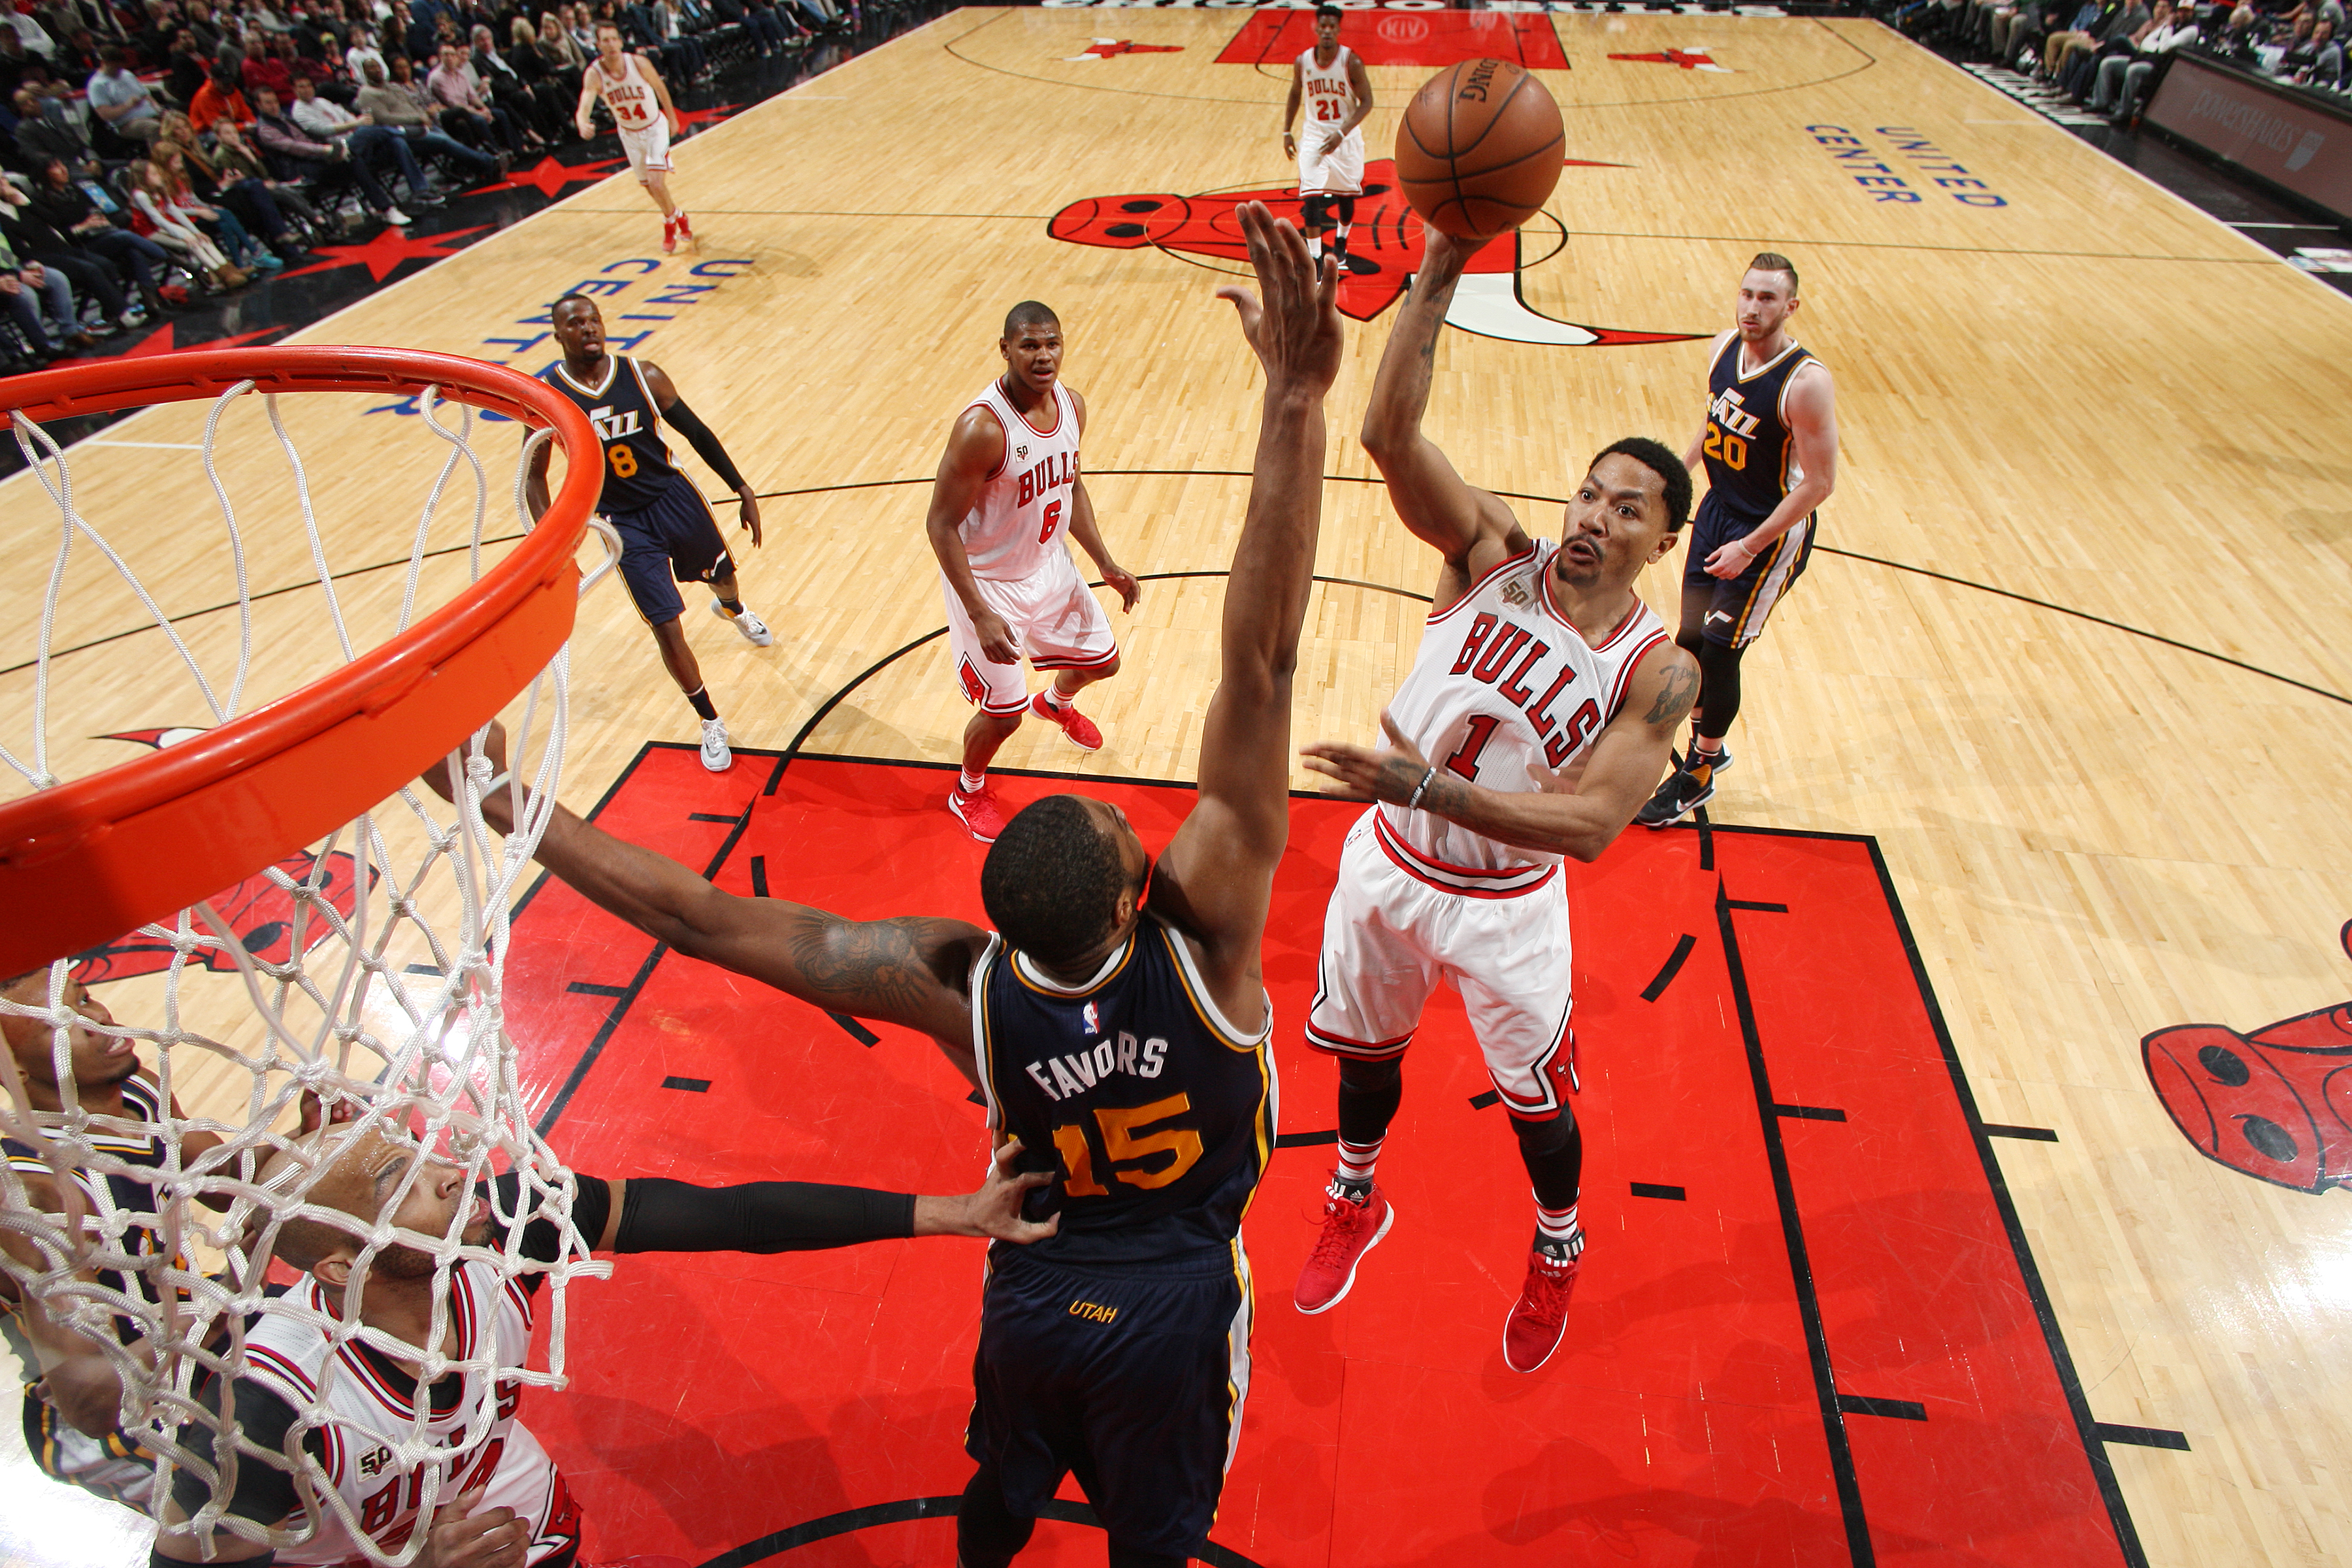 CHICAGO, IL - MARCH 19:  Derrick Rose #1 of the Chicago Bulls shoots the ball against the Utah Jazz on March 19, 2016 at the United Center in Chicago, Illinois. (Photo by Gary Dineen/NBAE via Getty Images)